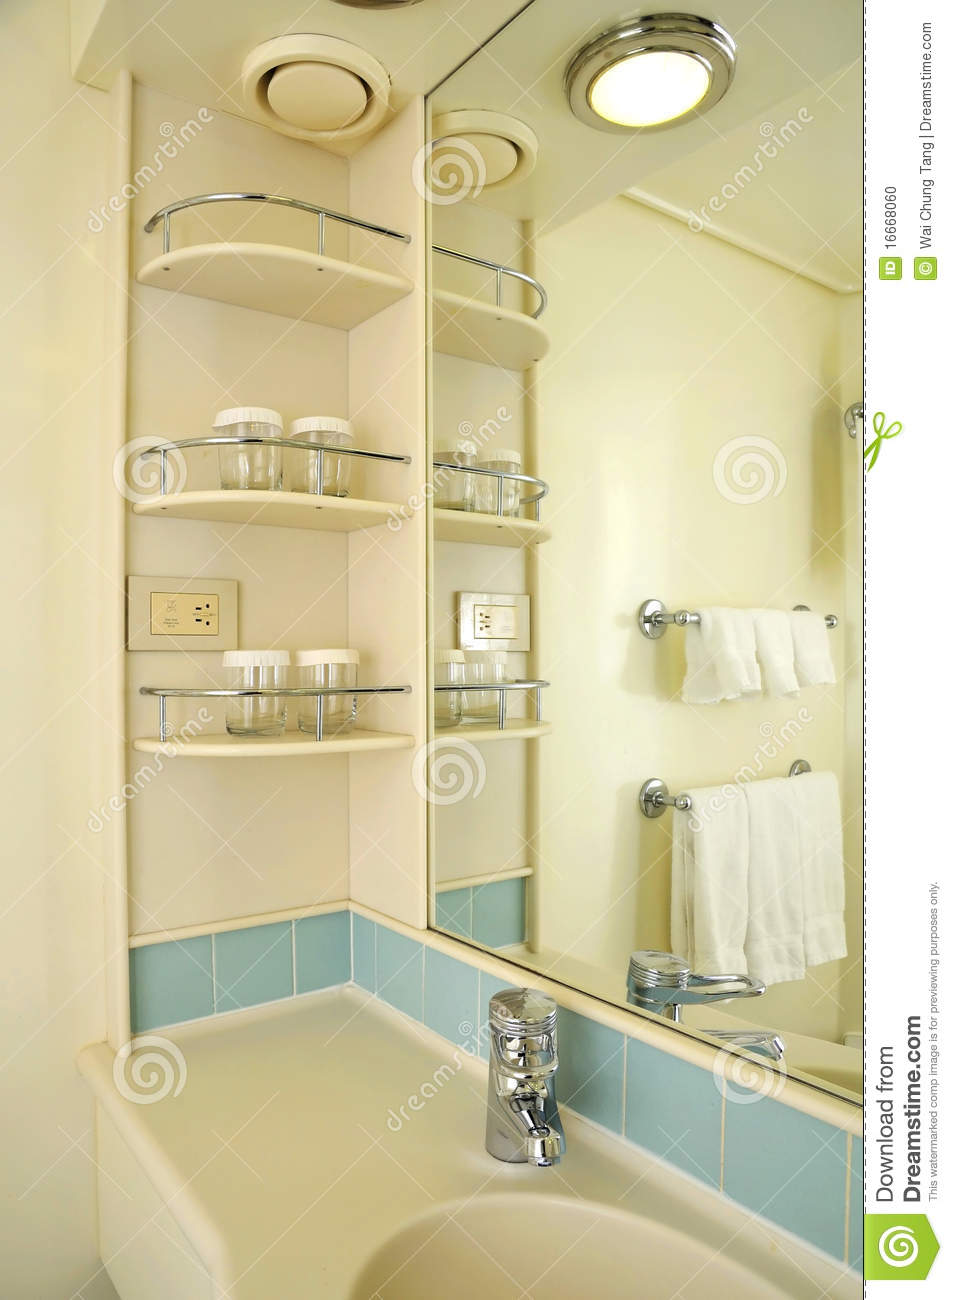 Wash basin and mirror stock photo Image of shelf water